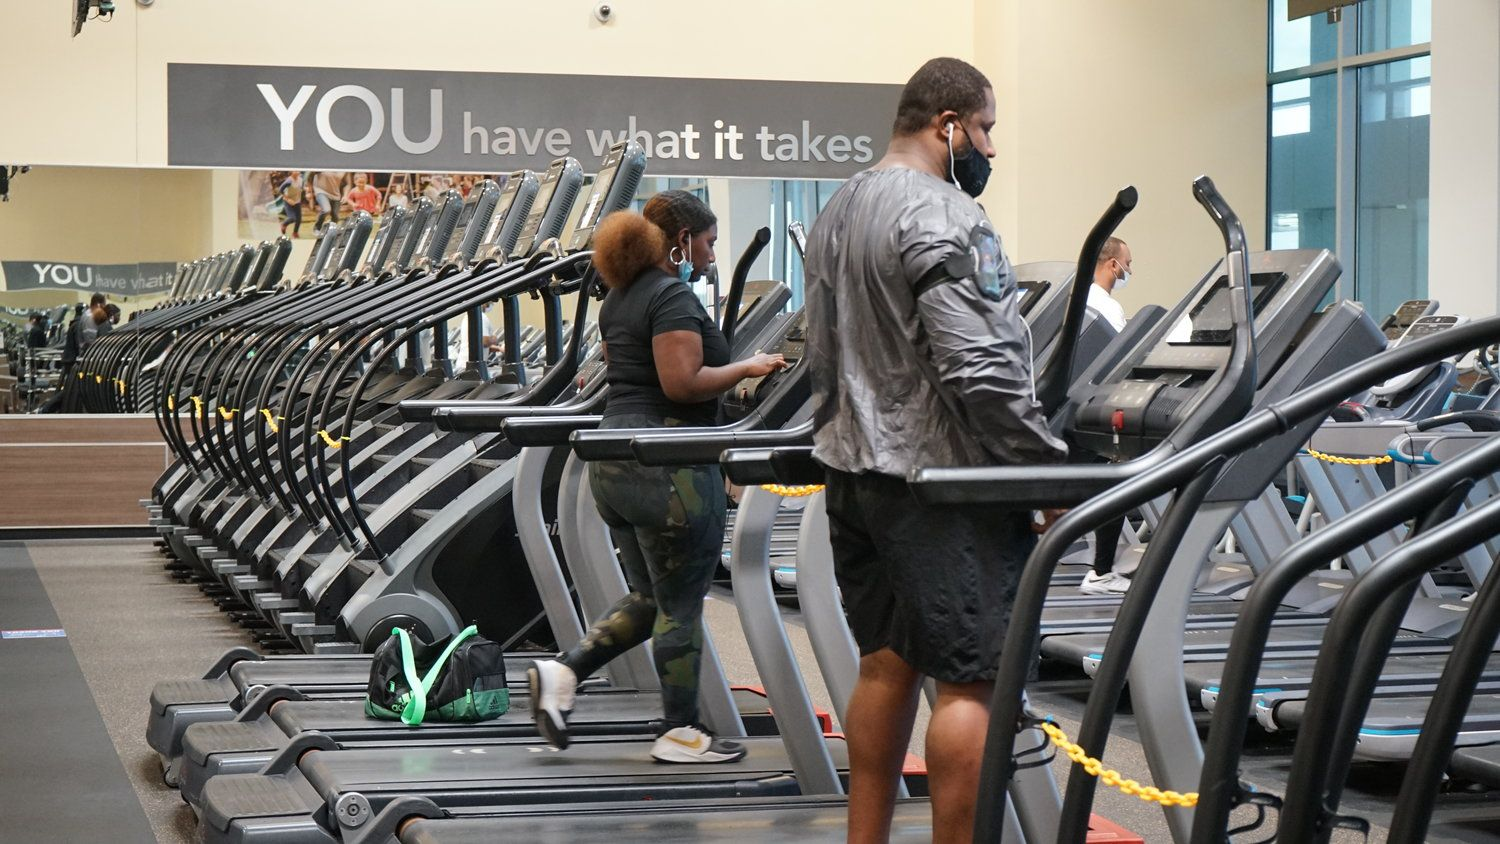 Gyms reopen in valley stream to limited capacity herald